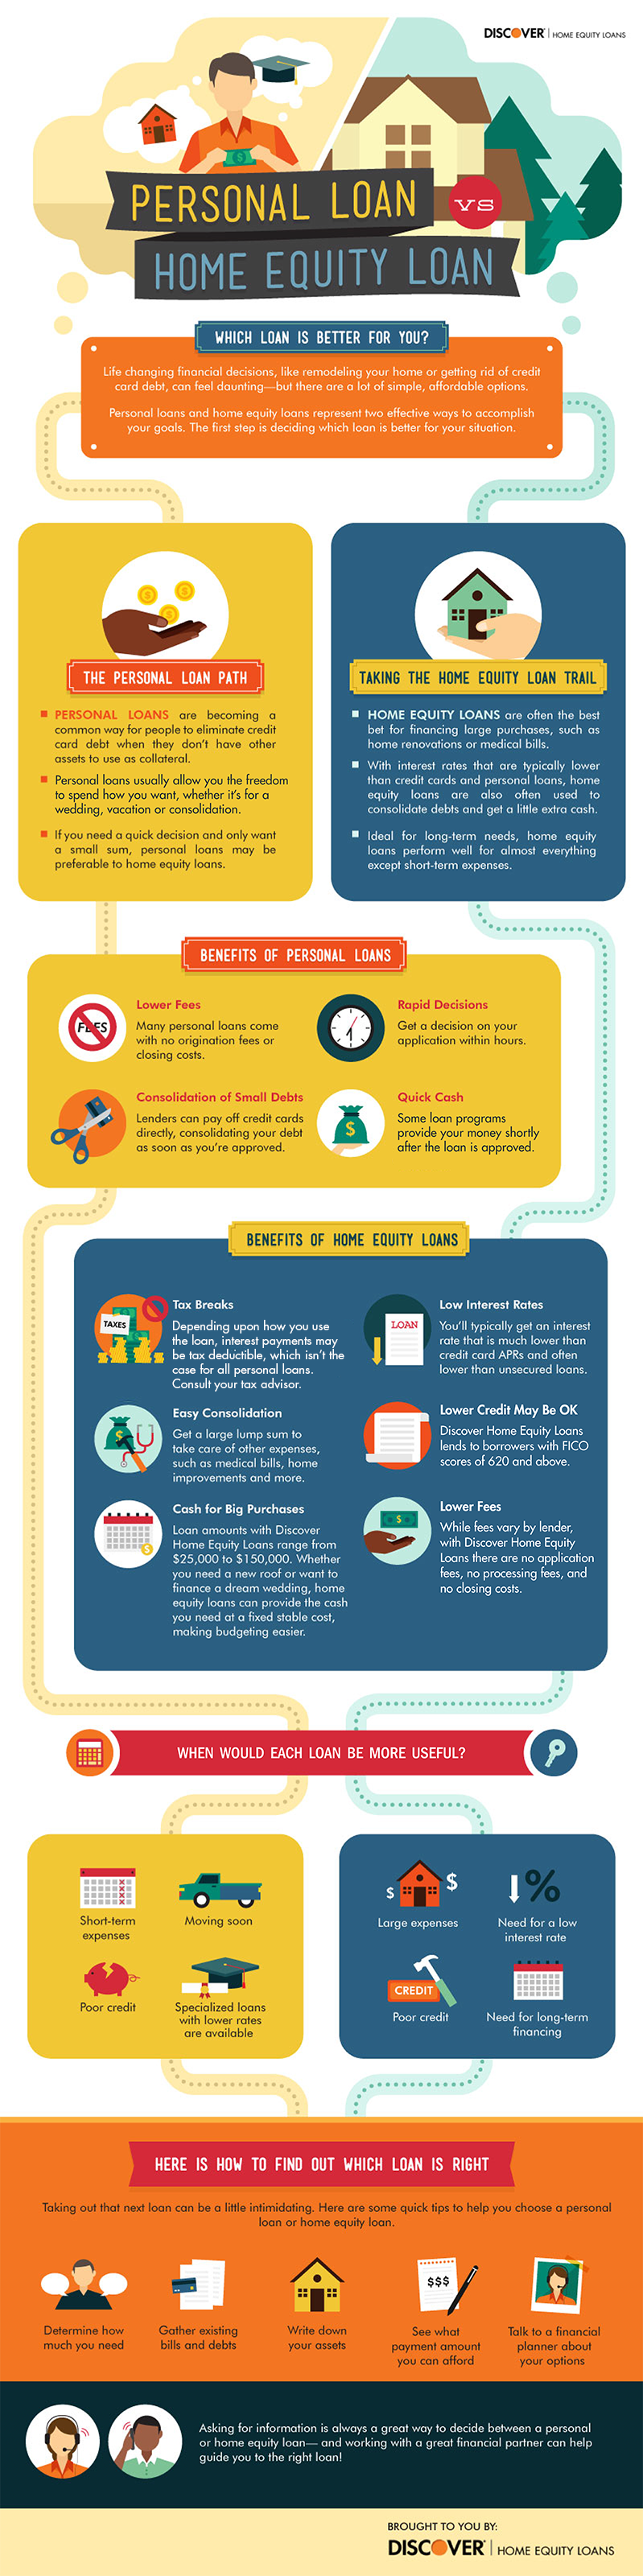 Personal Loan vs Home Equity Loan #infographic